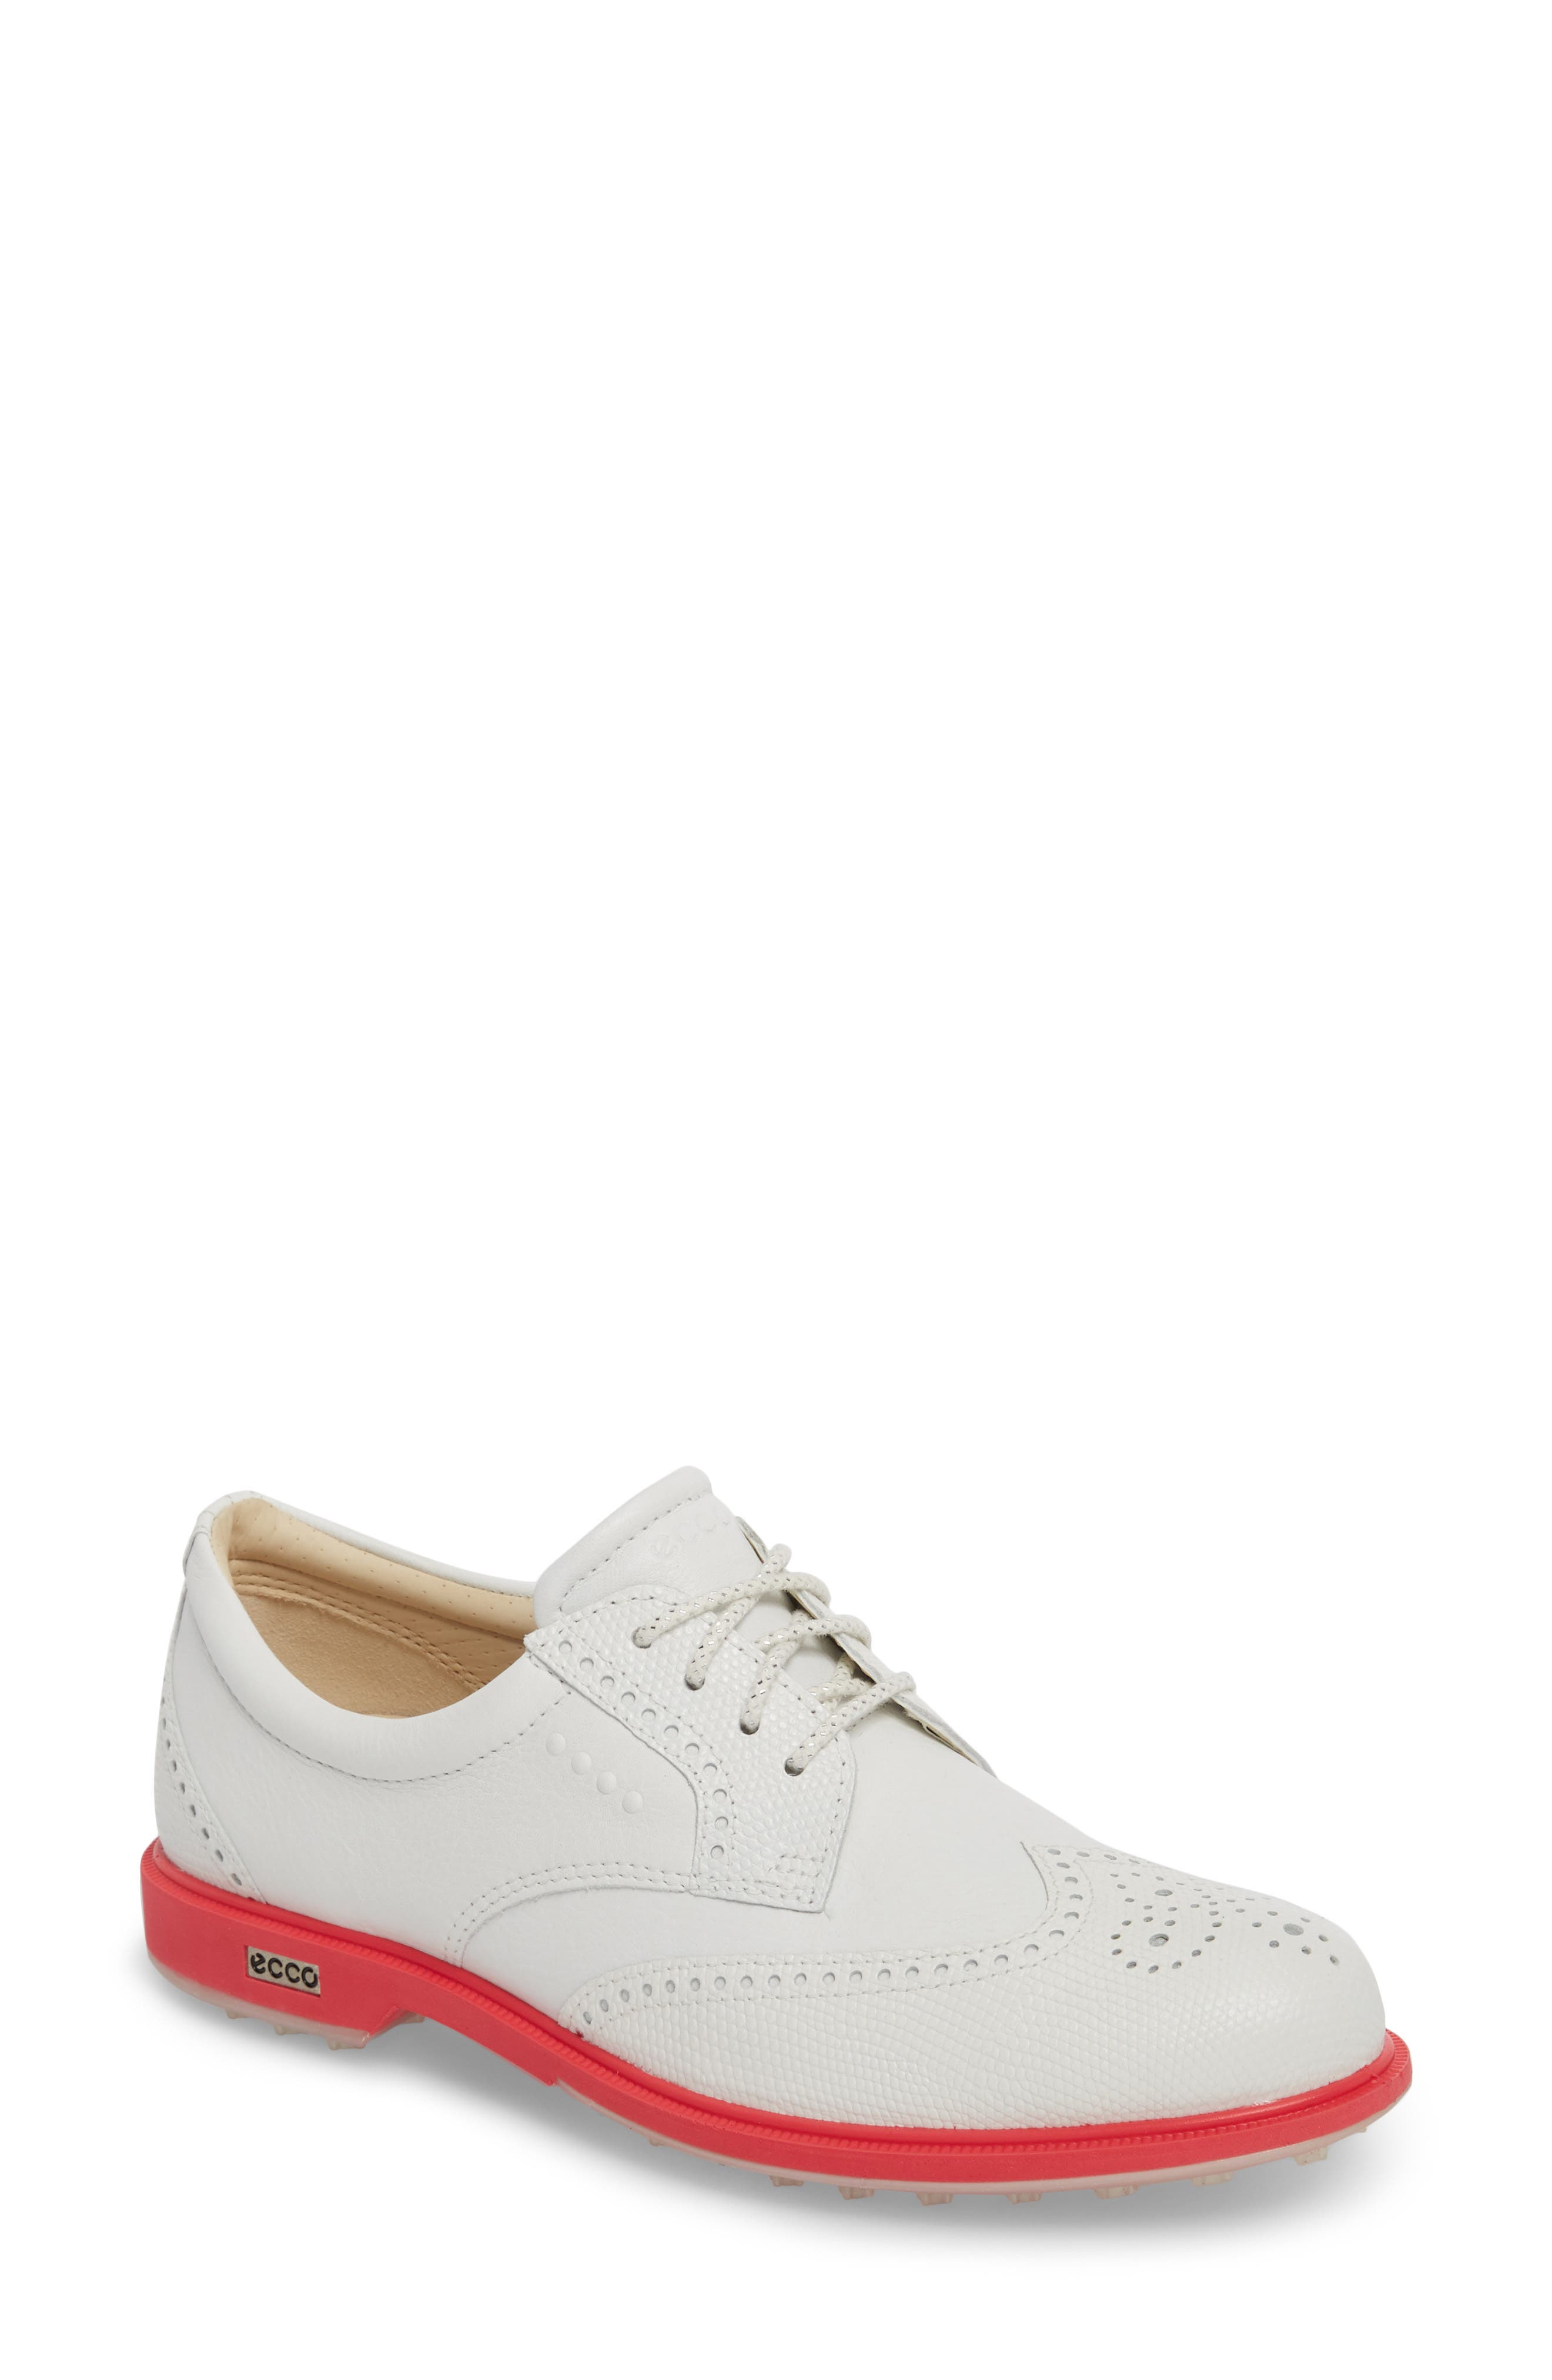 'Tour' Hybrid Wingtip Golf Shoe,                         Main,                         color, WHITE LEATHER/ RED